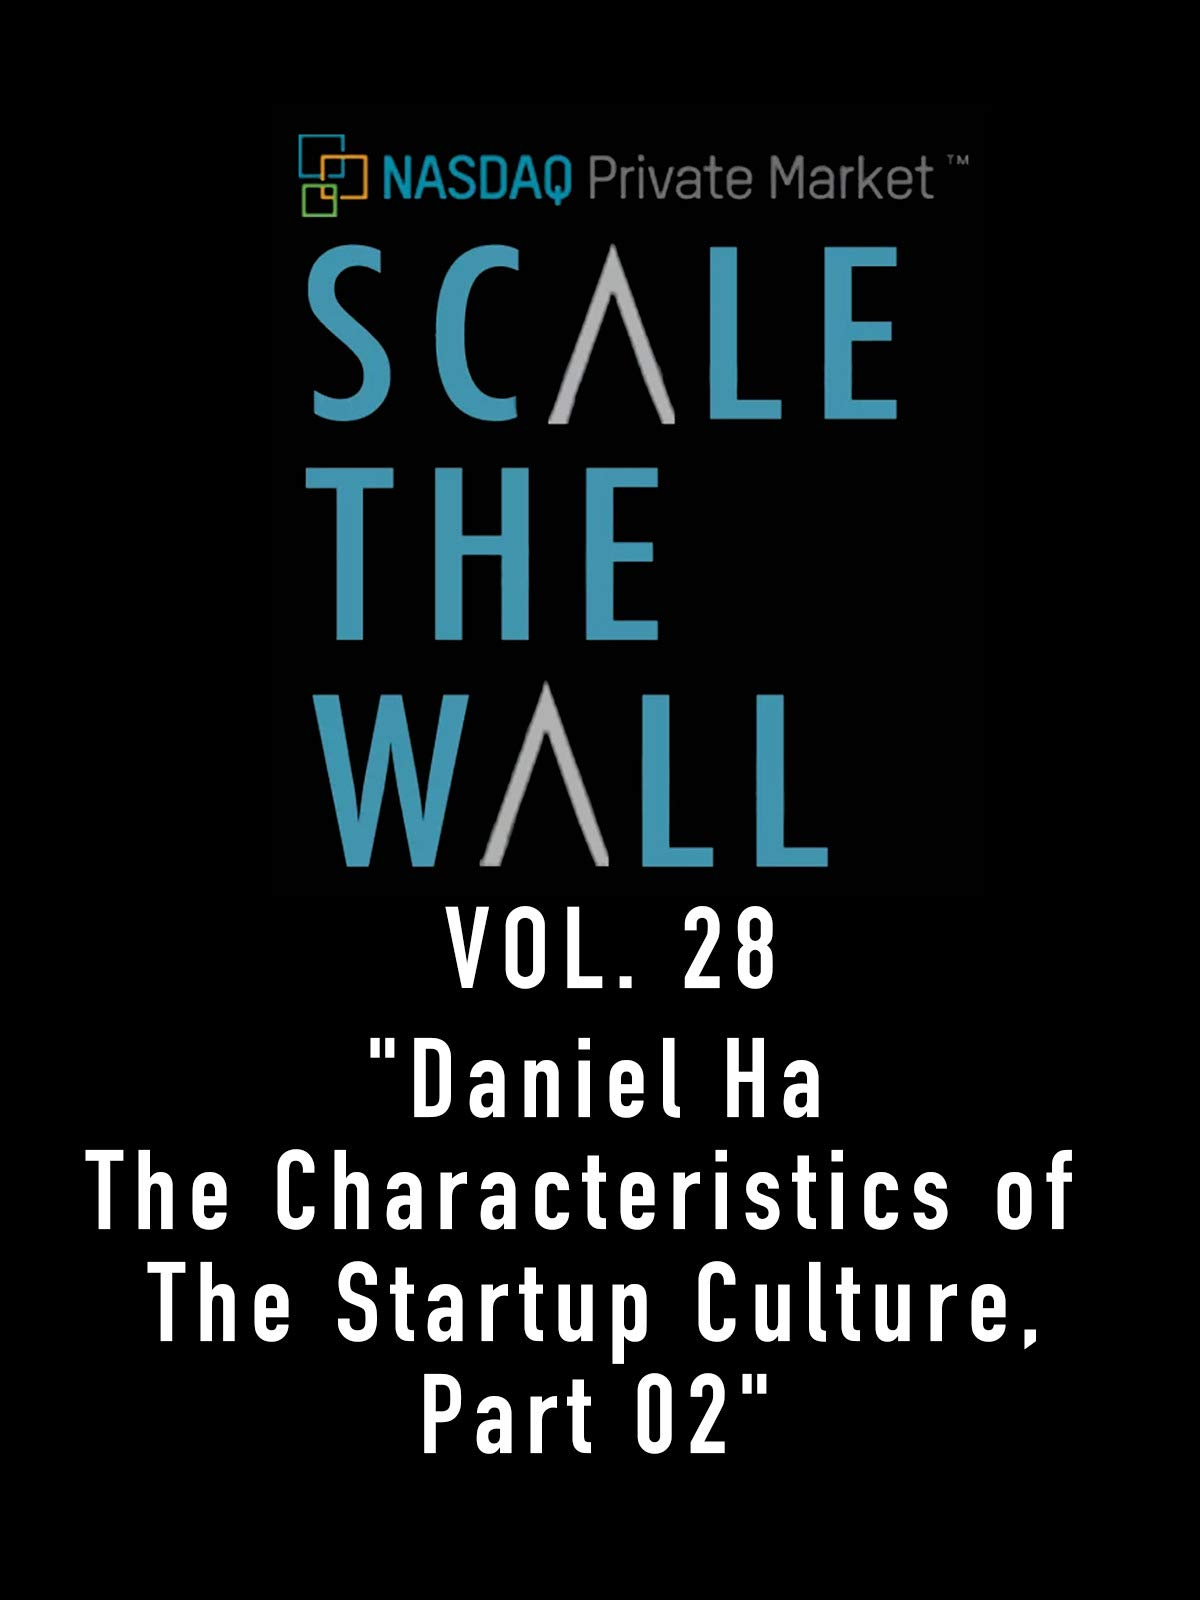 Scale the Wall Vol. 28